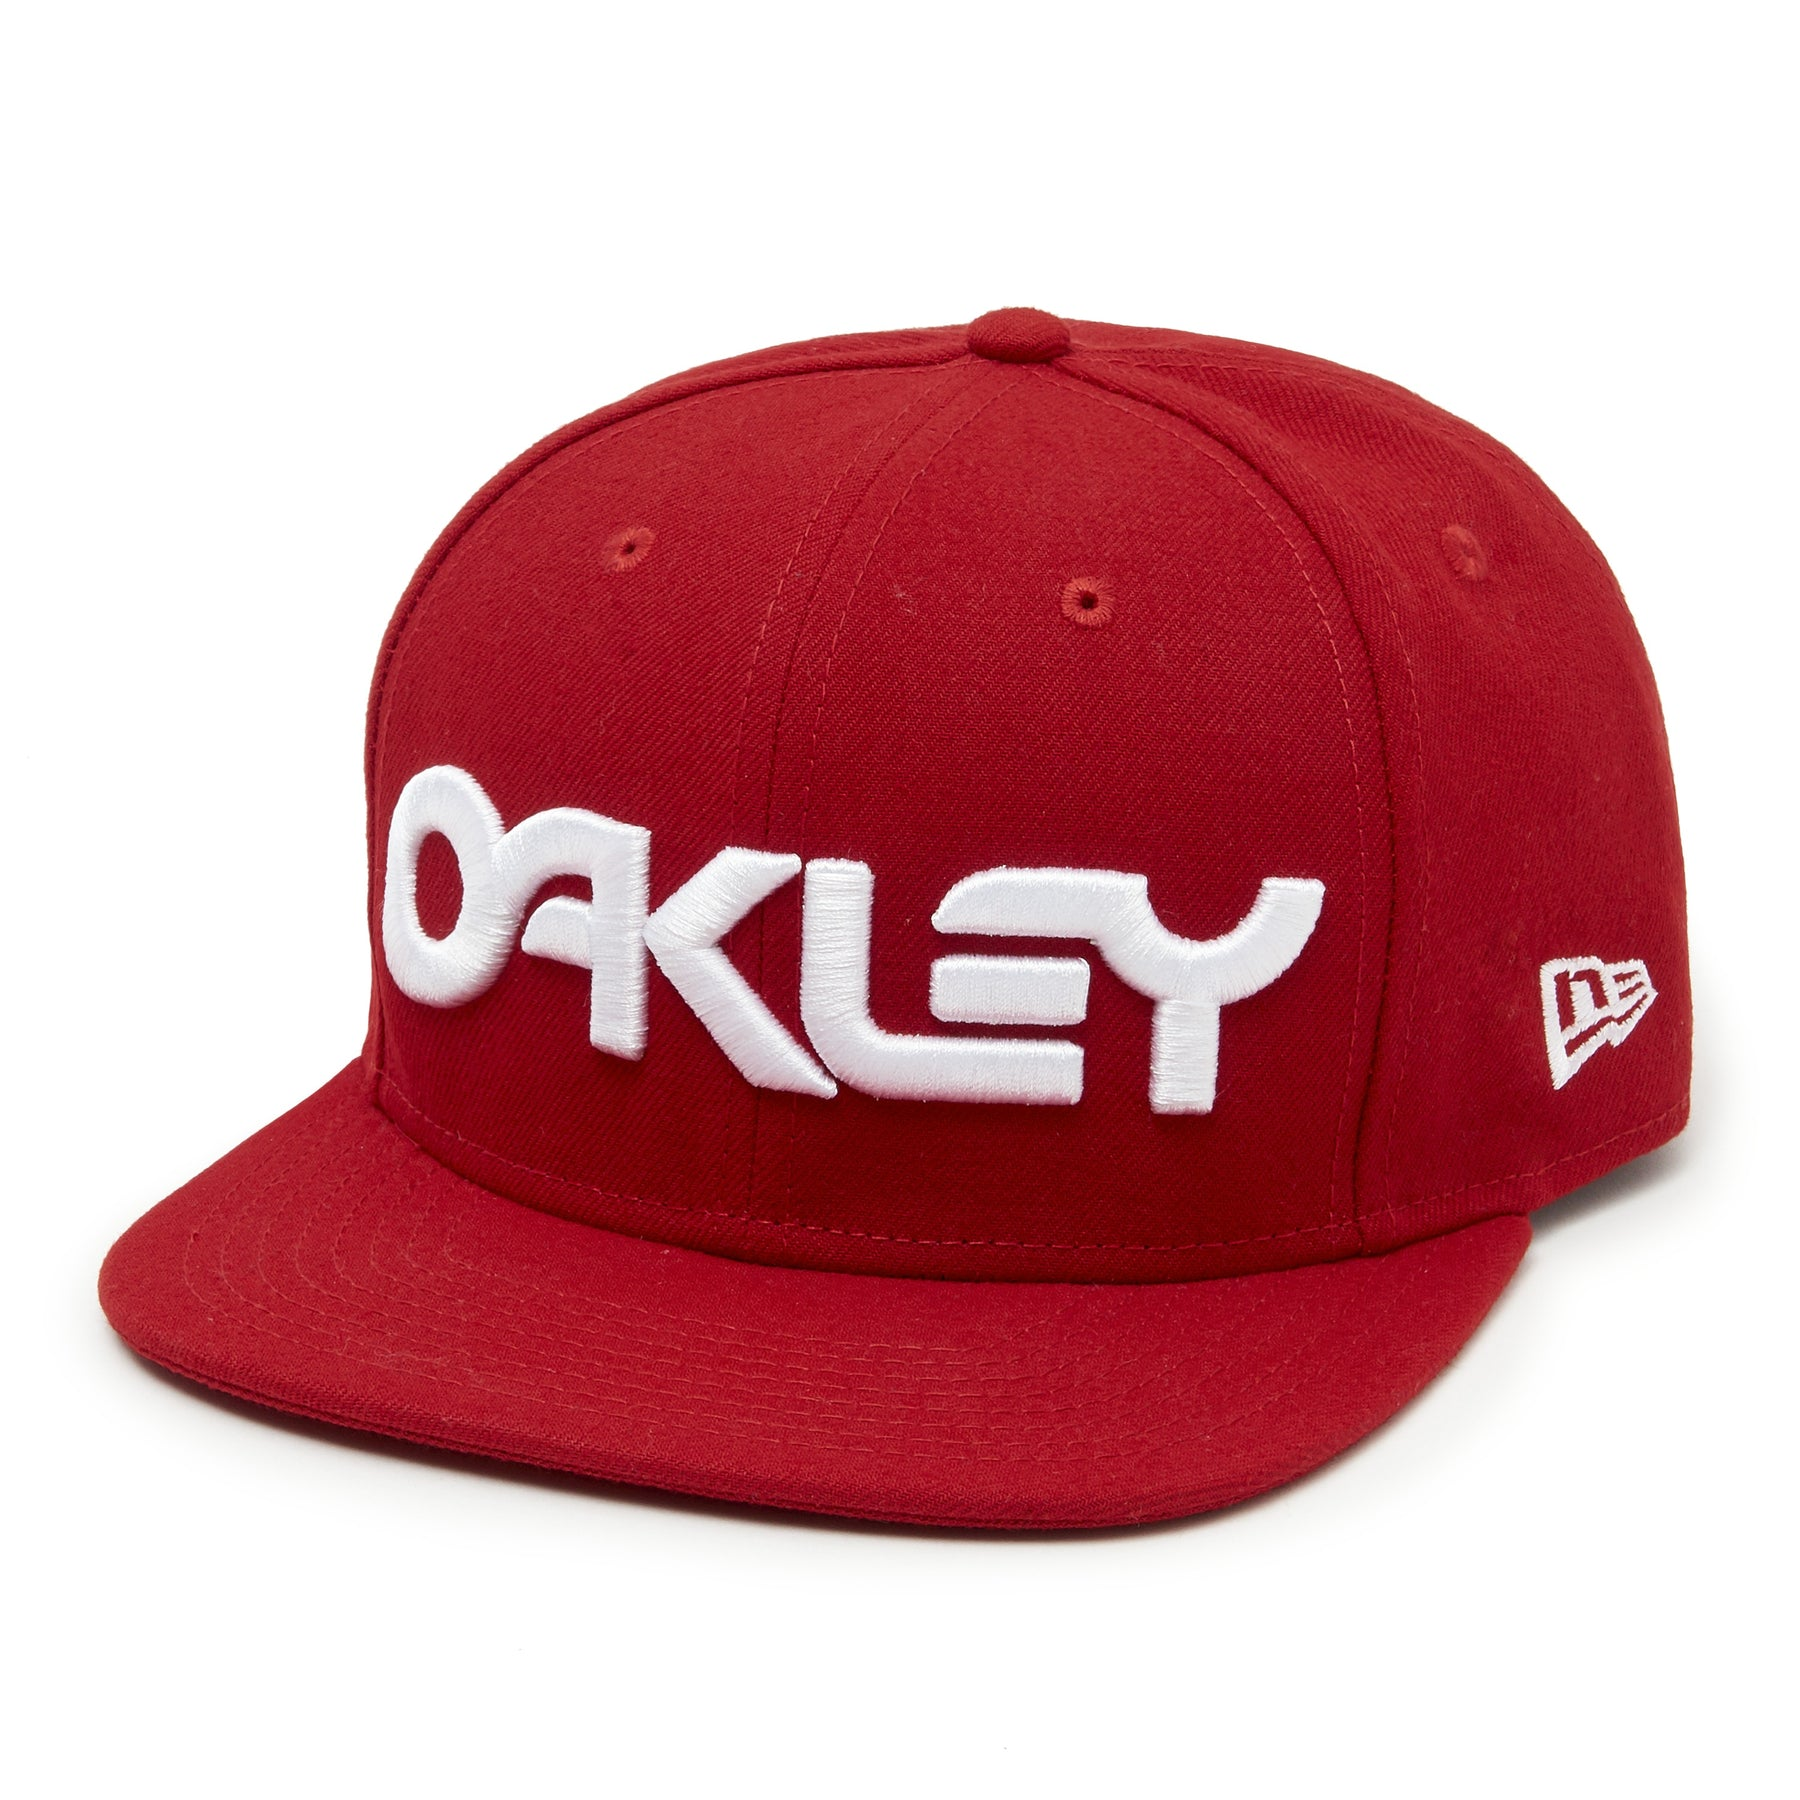 New Oakley Men's hats - 88 Gear